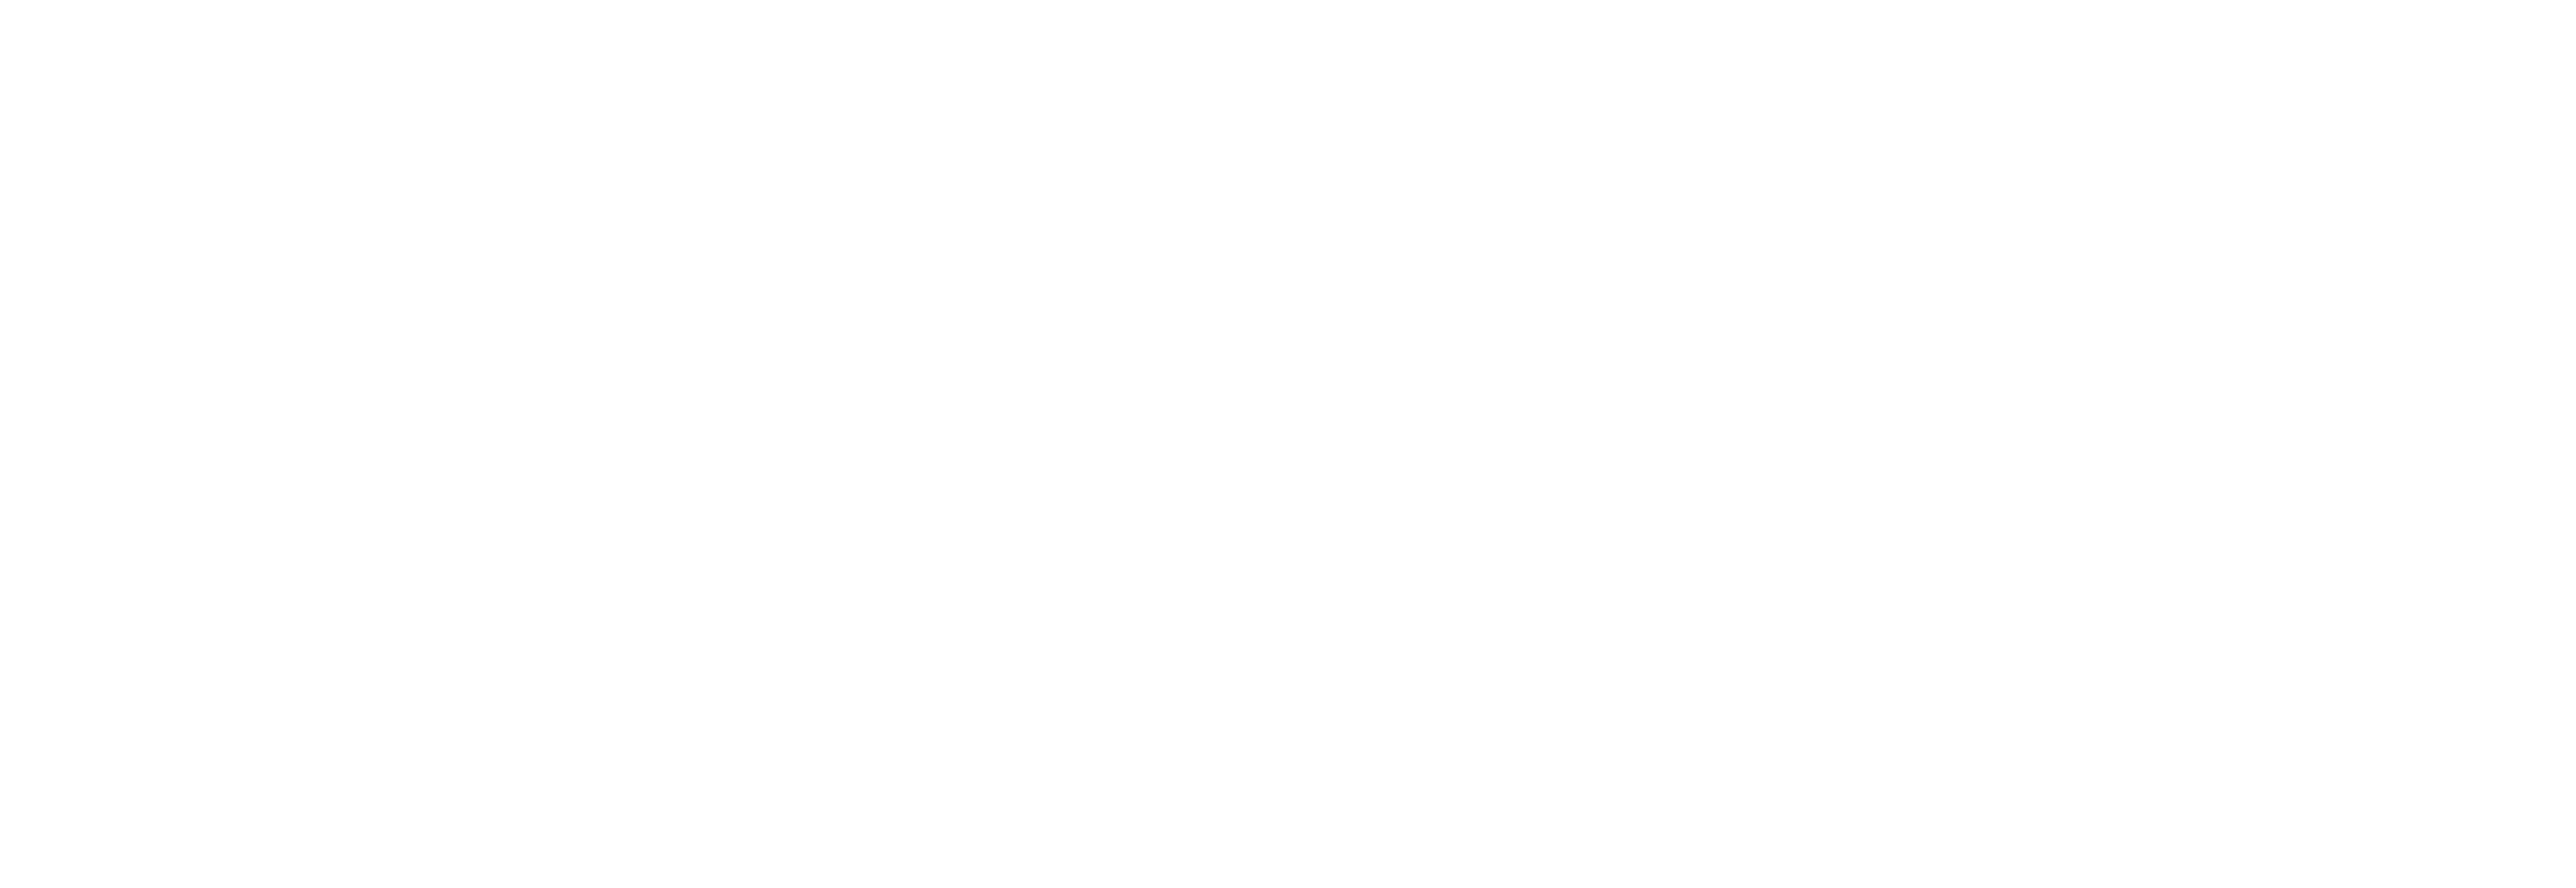 Phoenix Move Out House Cleaning Pros white logo